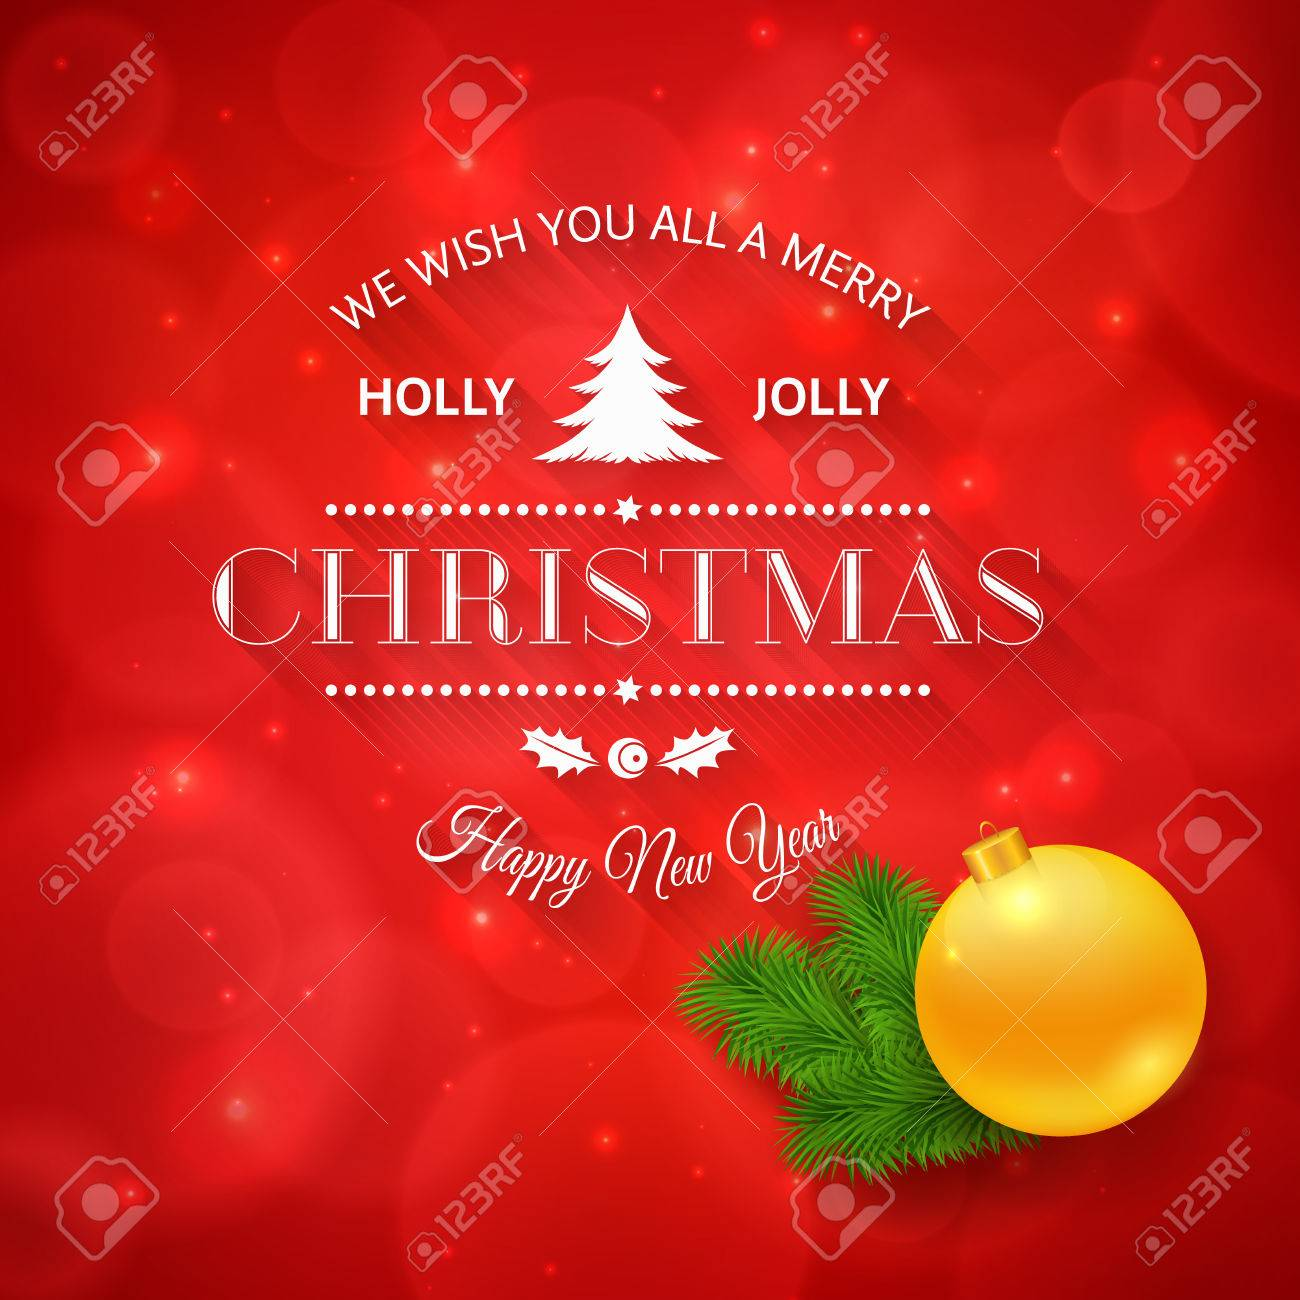 Merry christmas greetings logo on colorful background christmas merry christmas greetings logo on colorful background christmas design made in vector stock vector kristyandbryce Image collections